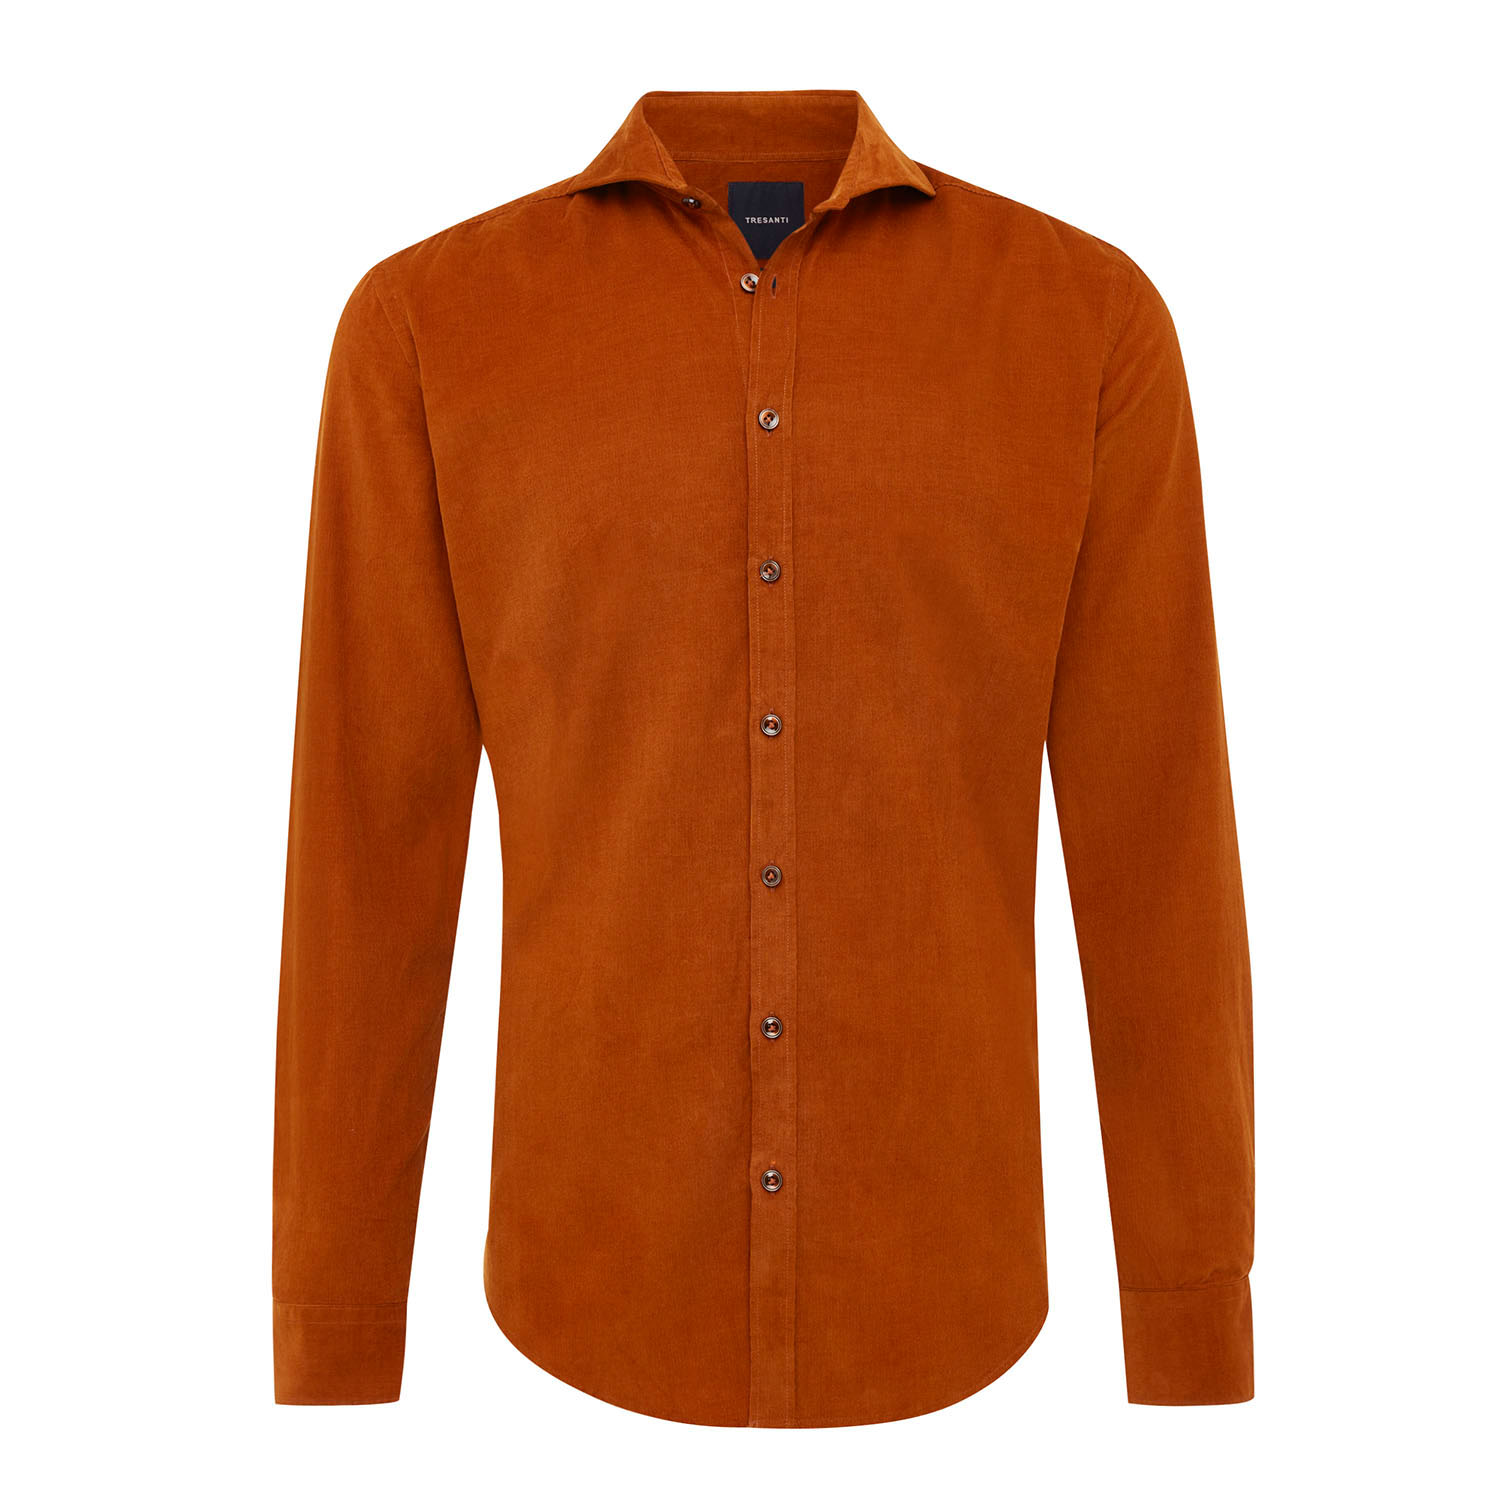 EMRIC | Shirt with button closure and baby cord camel